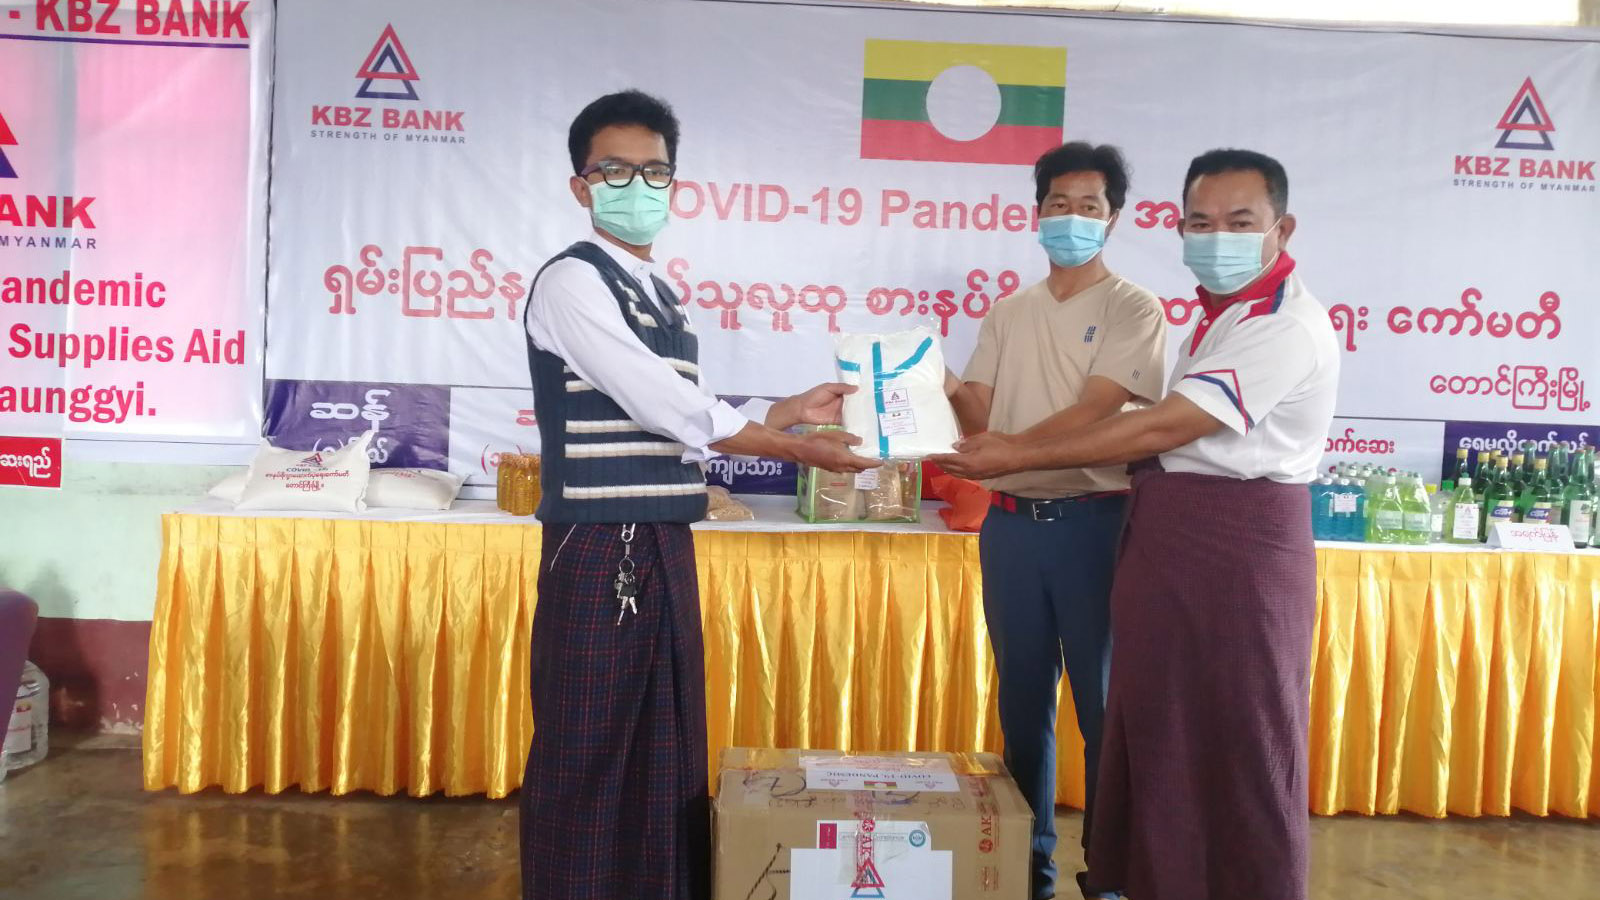 A local man accepts food aid from Shan State authorities. Photo: IPRD